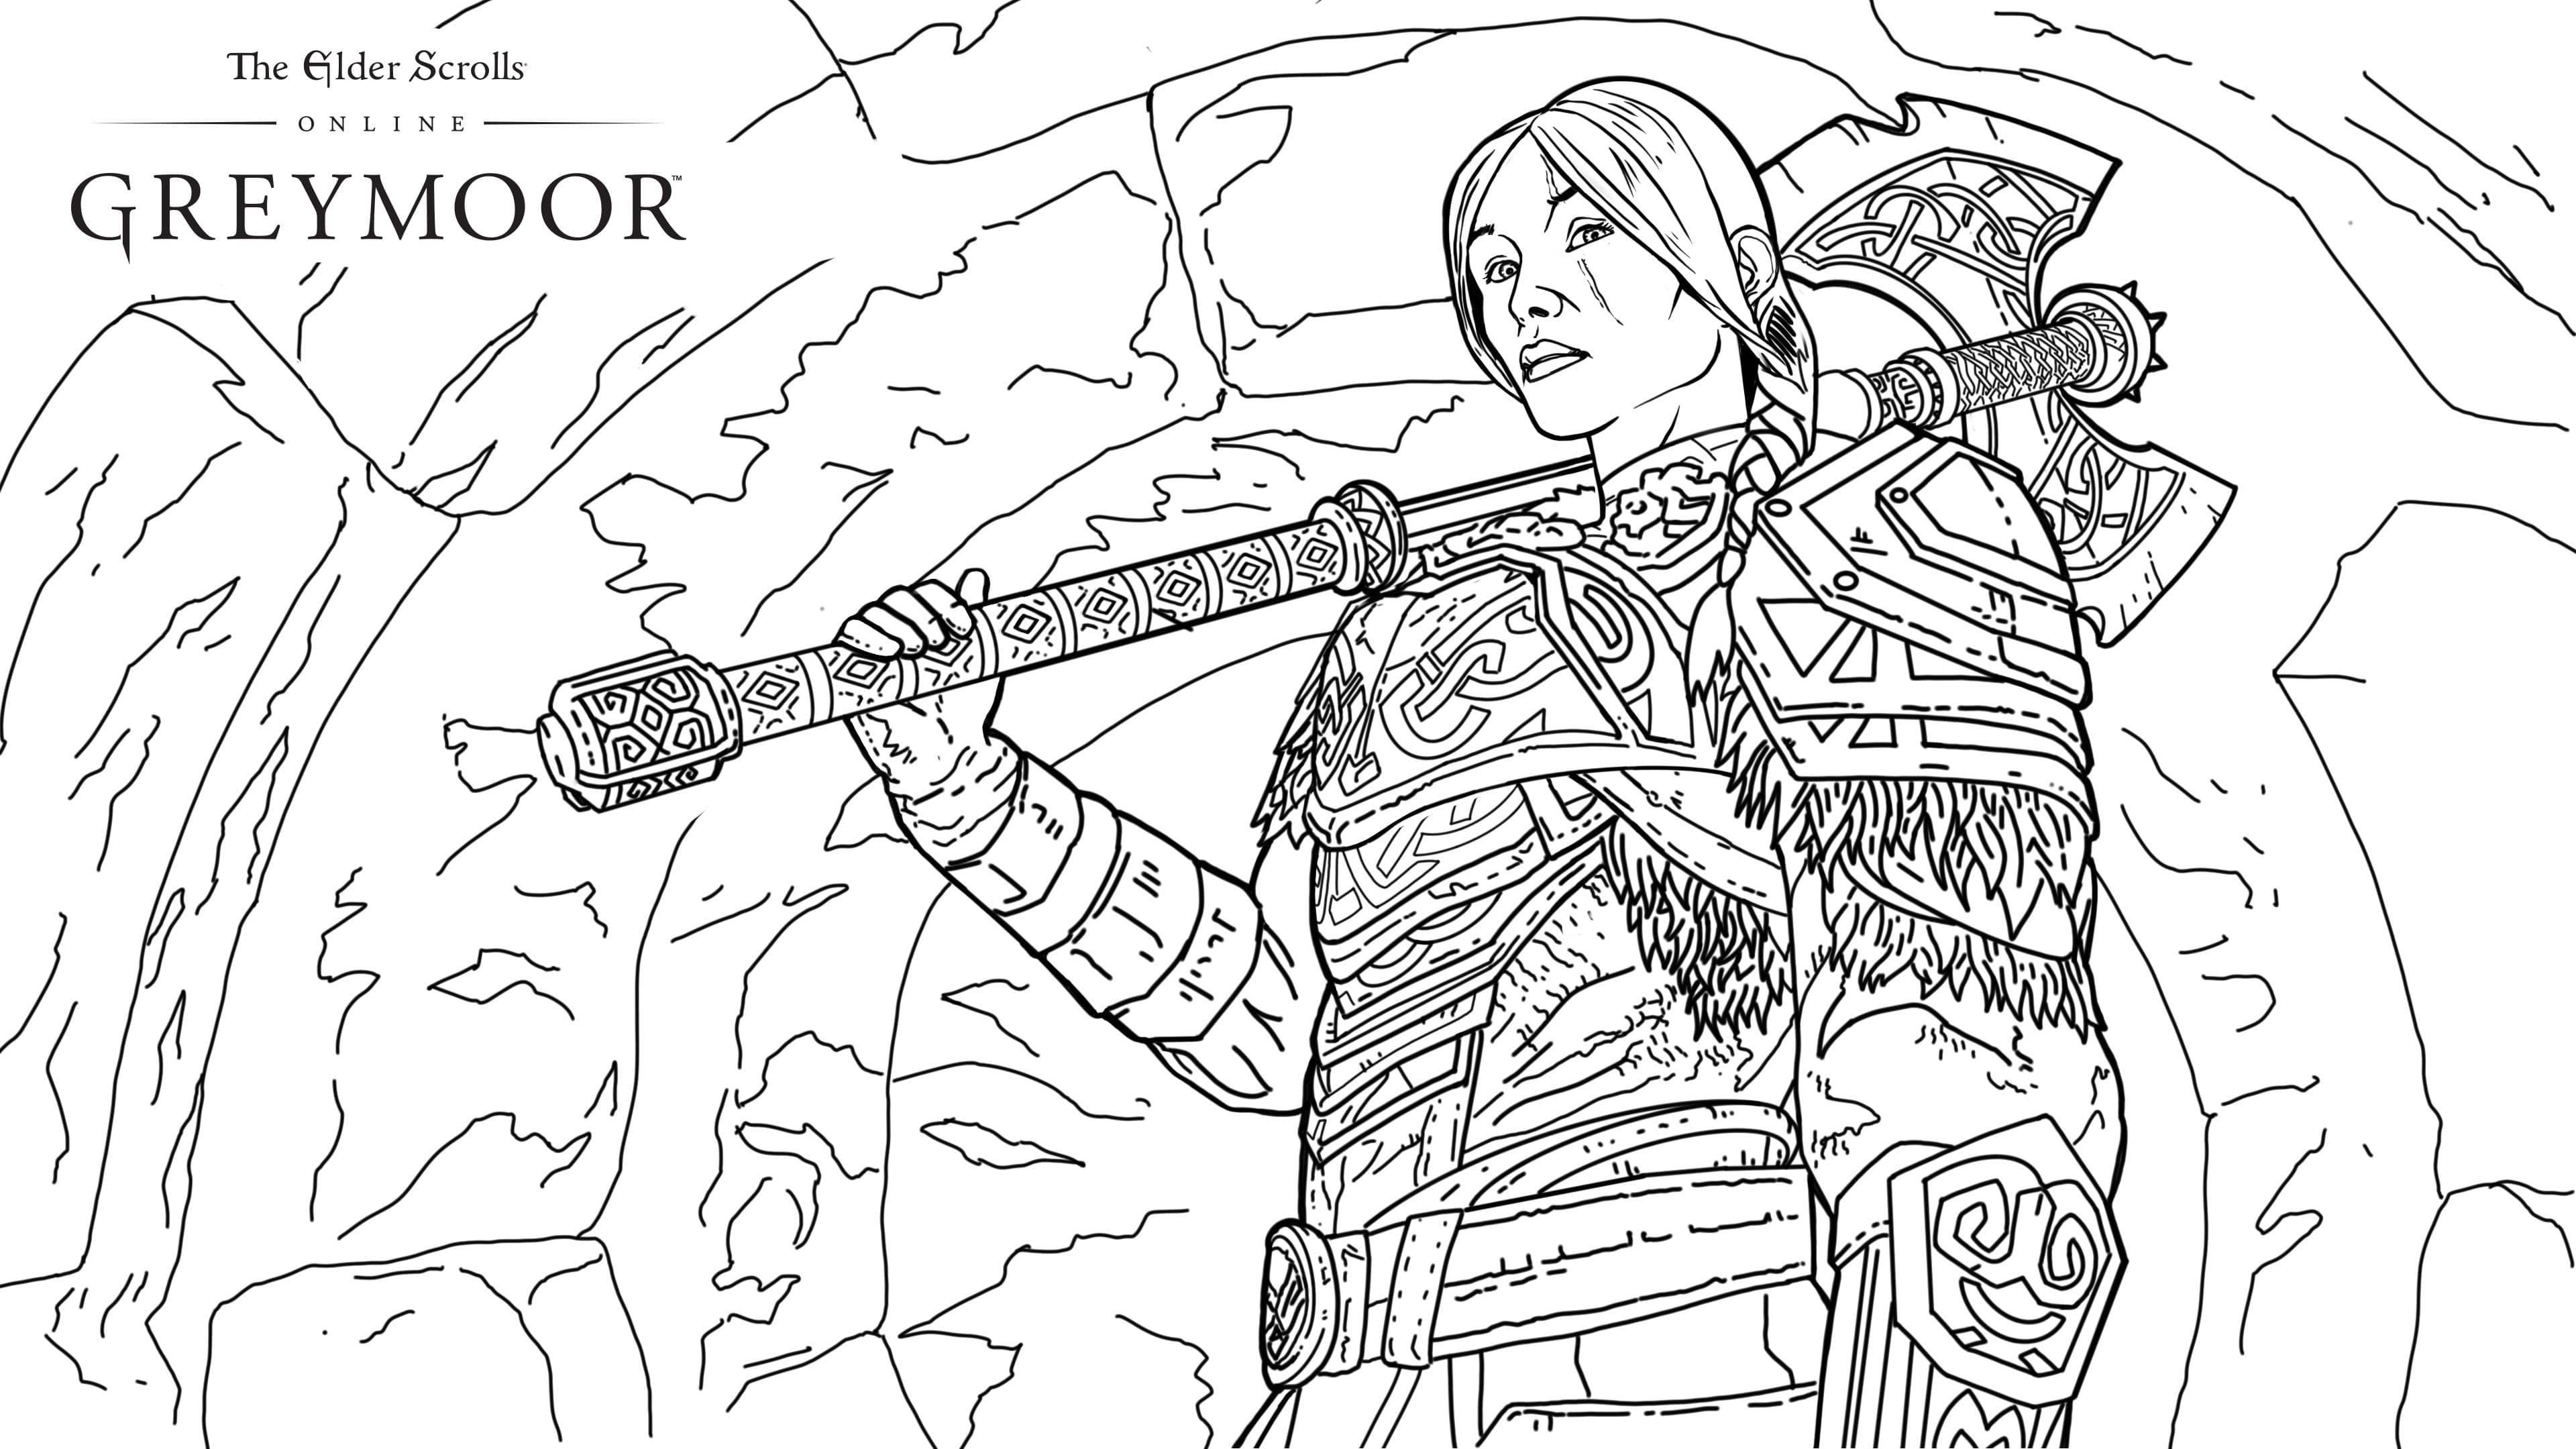 - Get Creative At Home With These Greymoor Coloring Pages - The